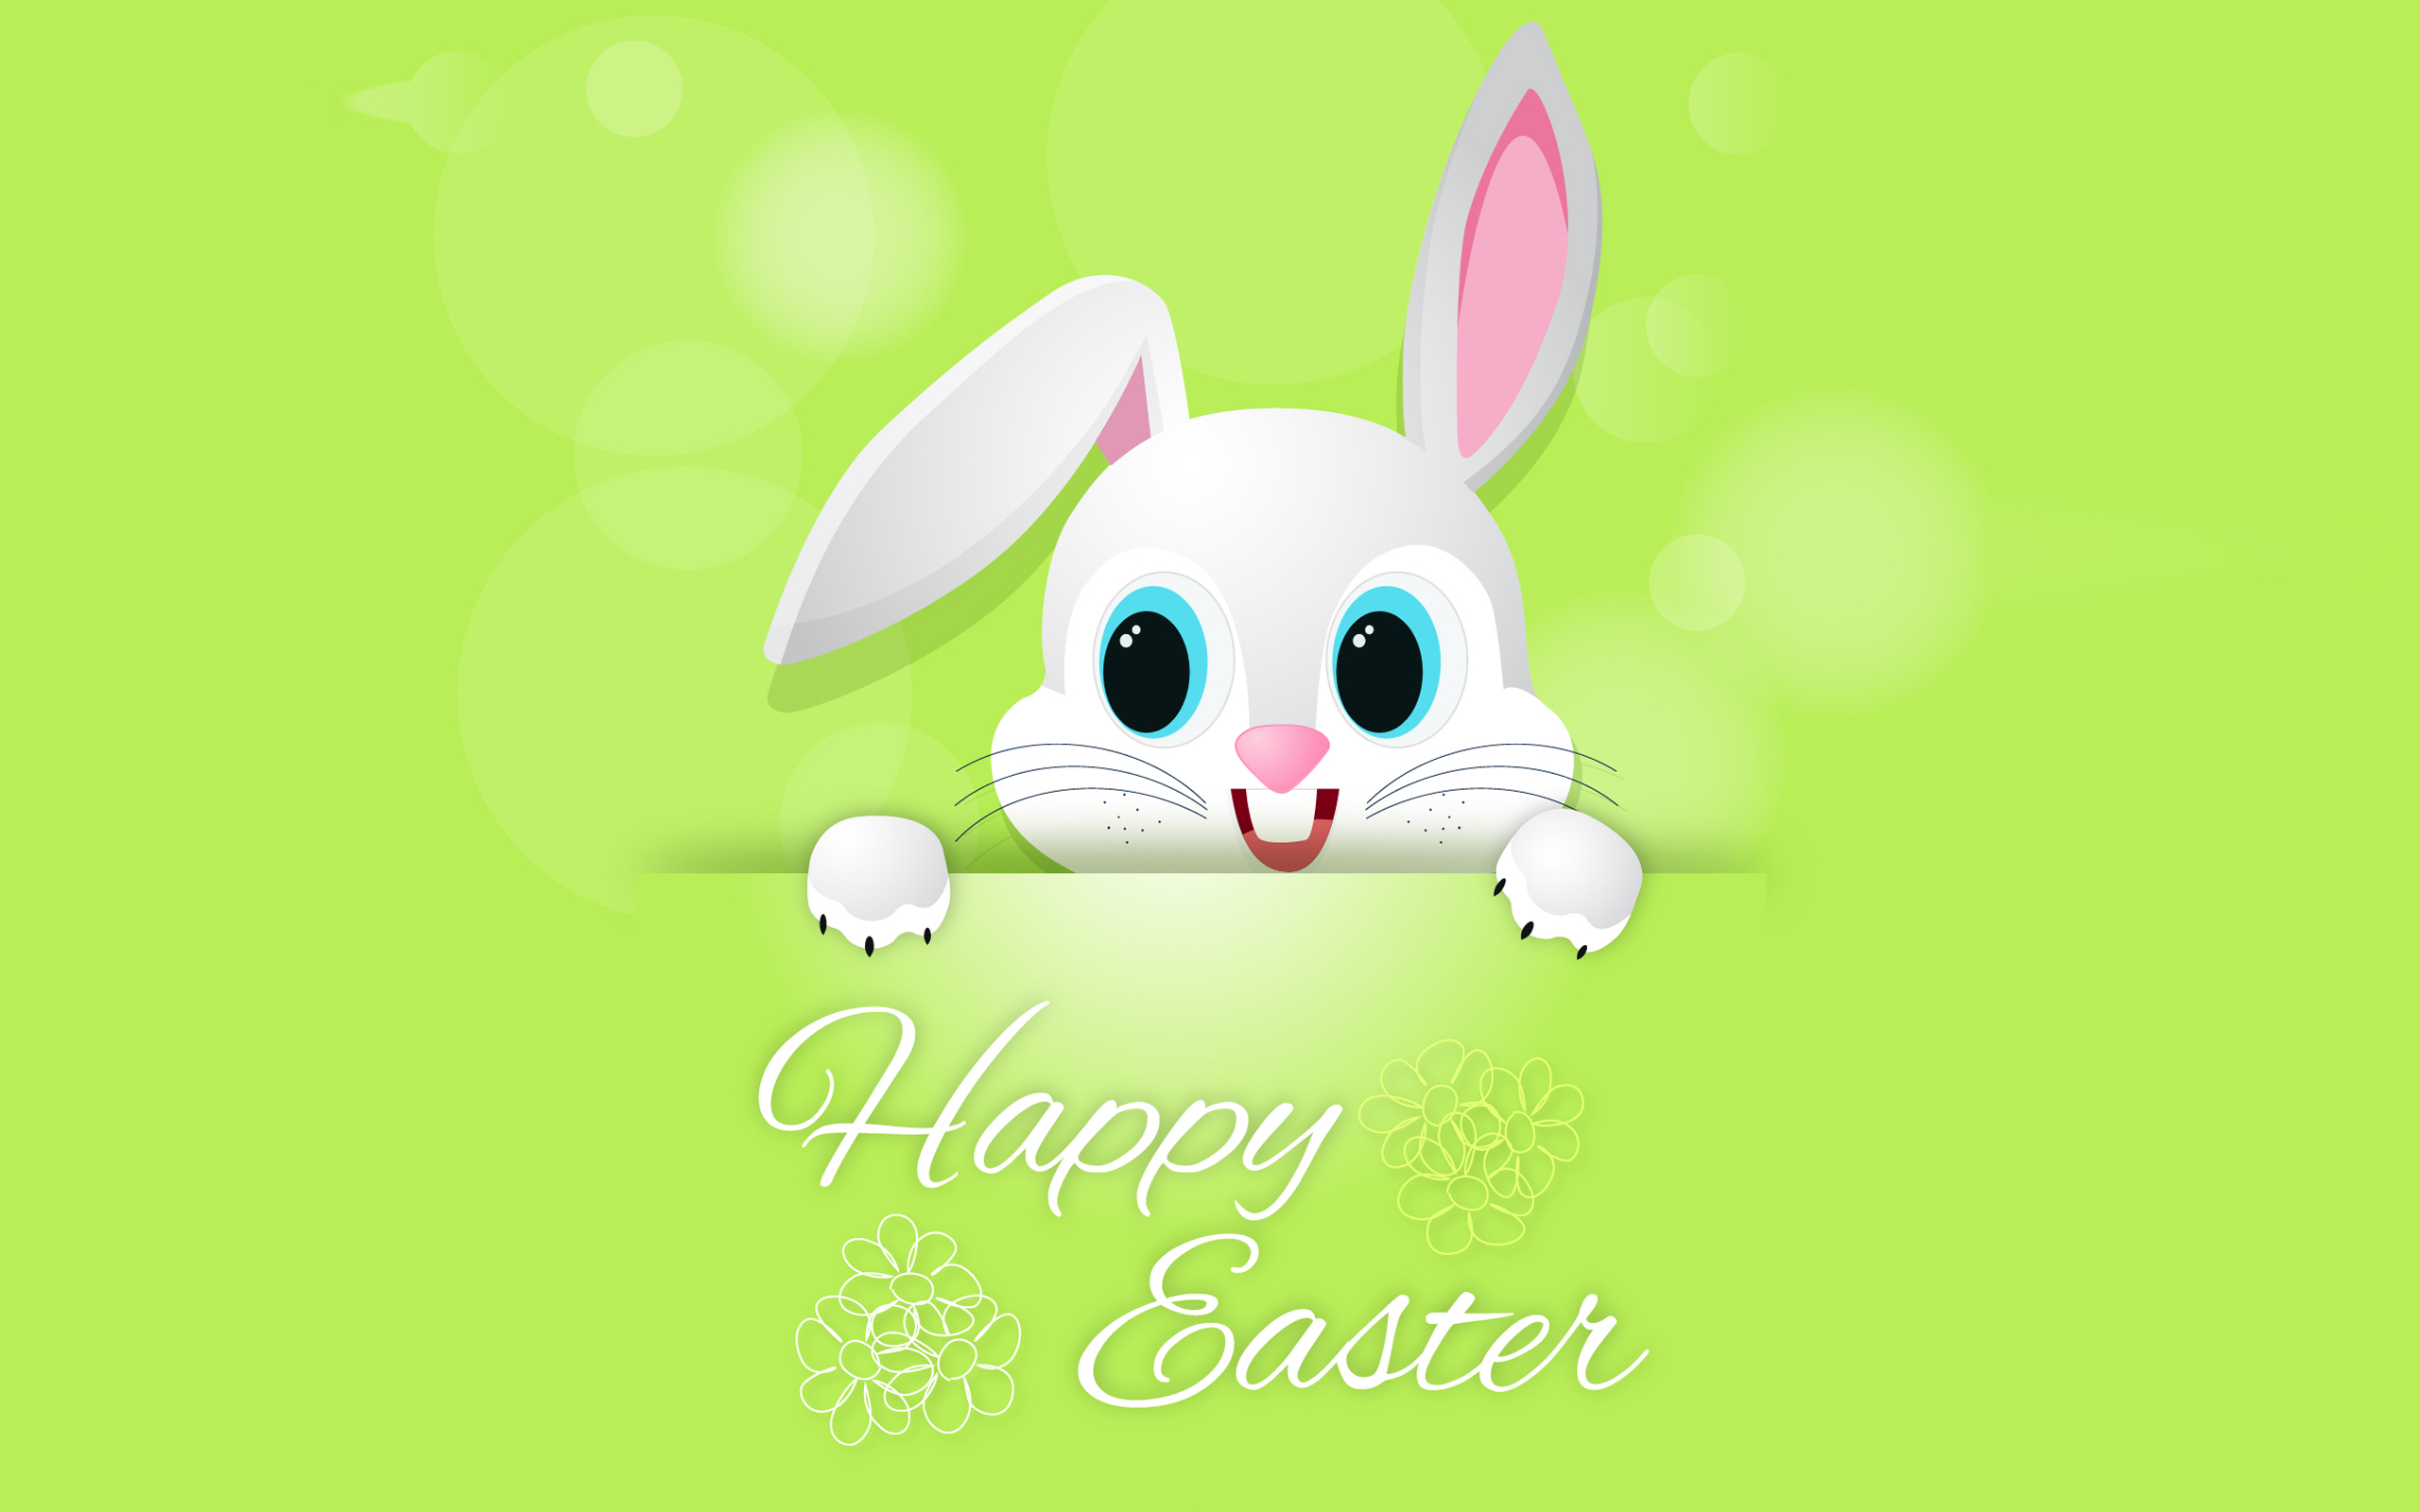 Easter Wallpapers Archives   Page 4 of 10   HD Desktop 2560x1600